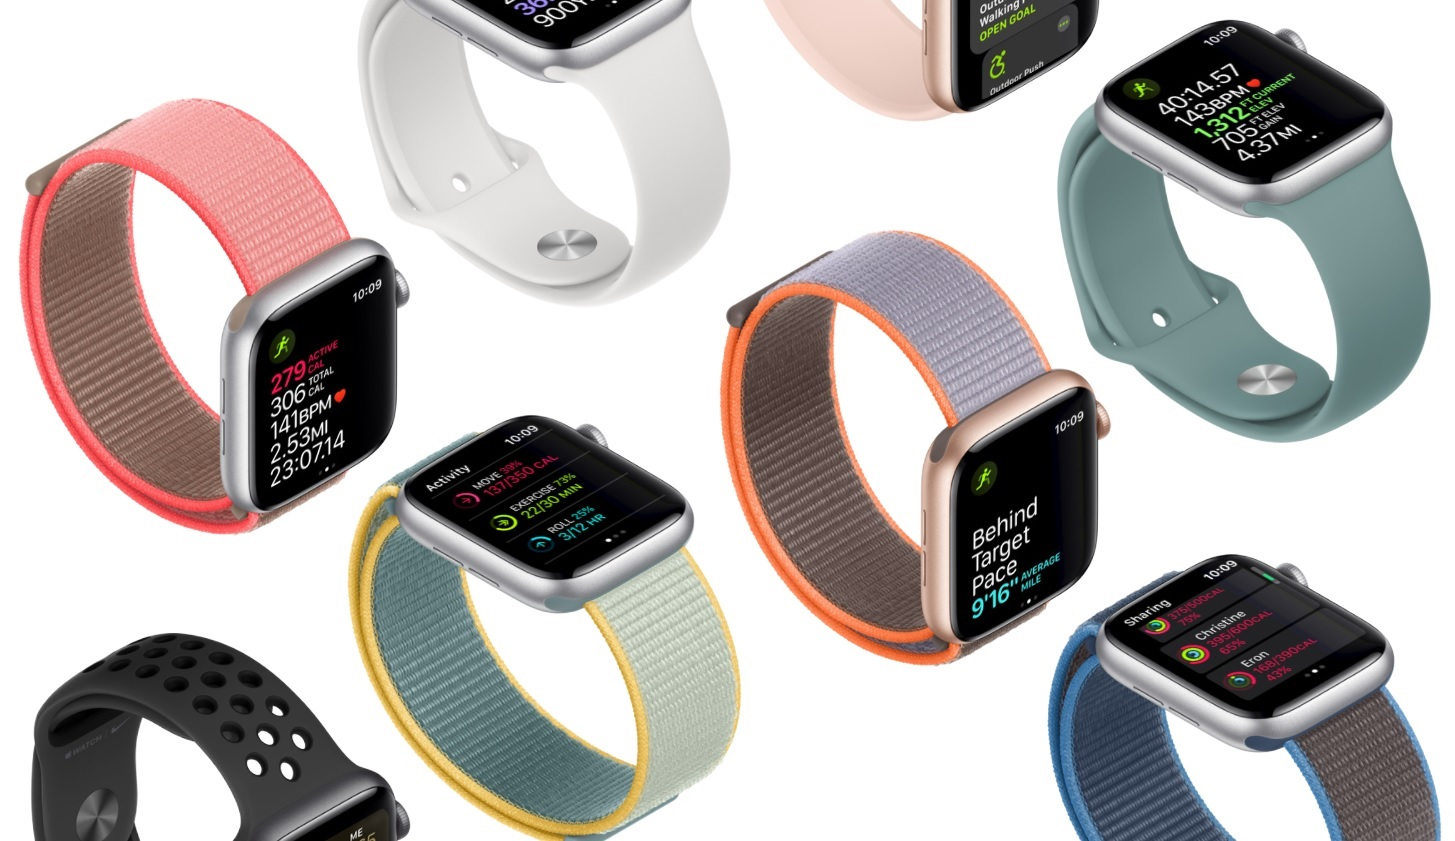 The latest blatant Apple Watch clone cost just $45